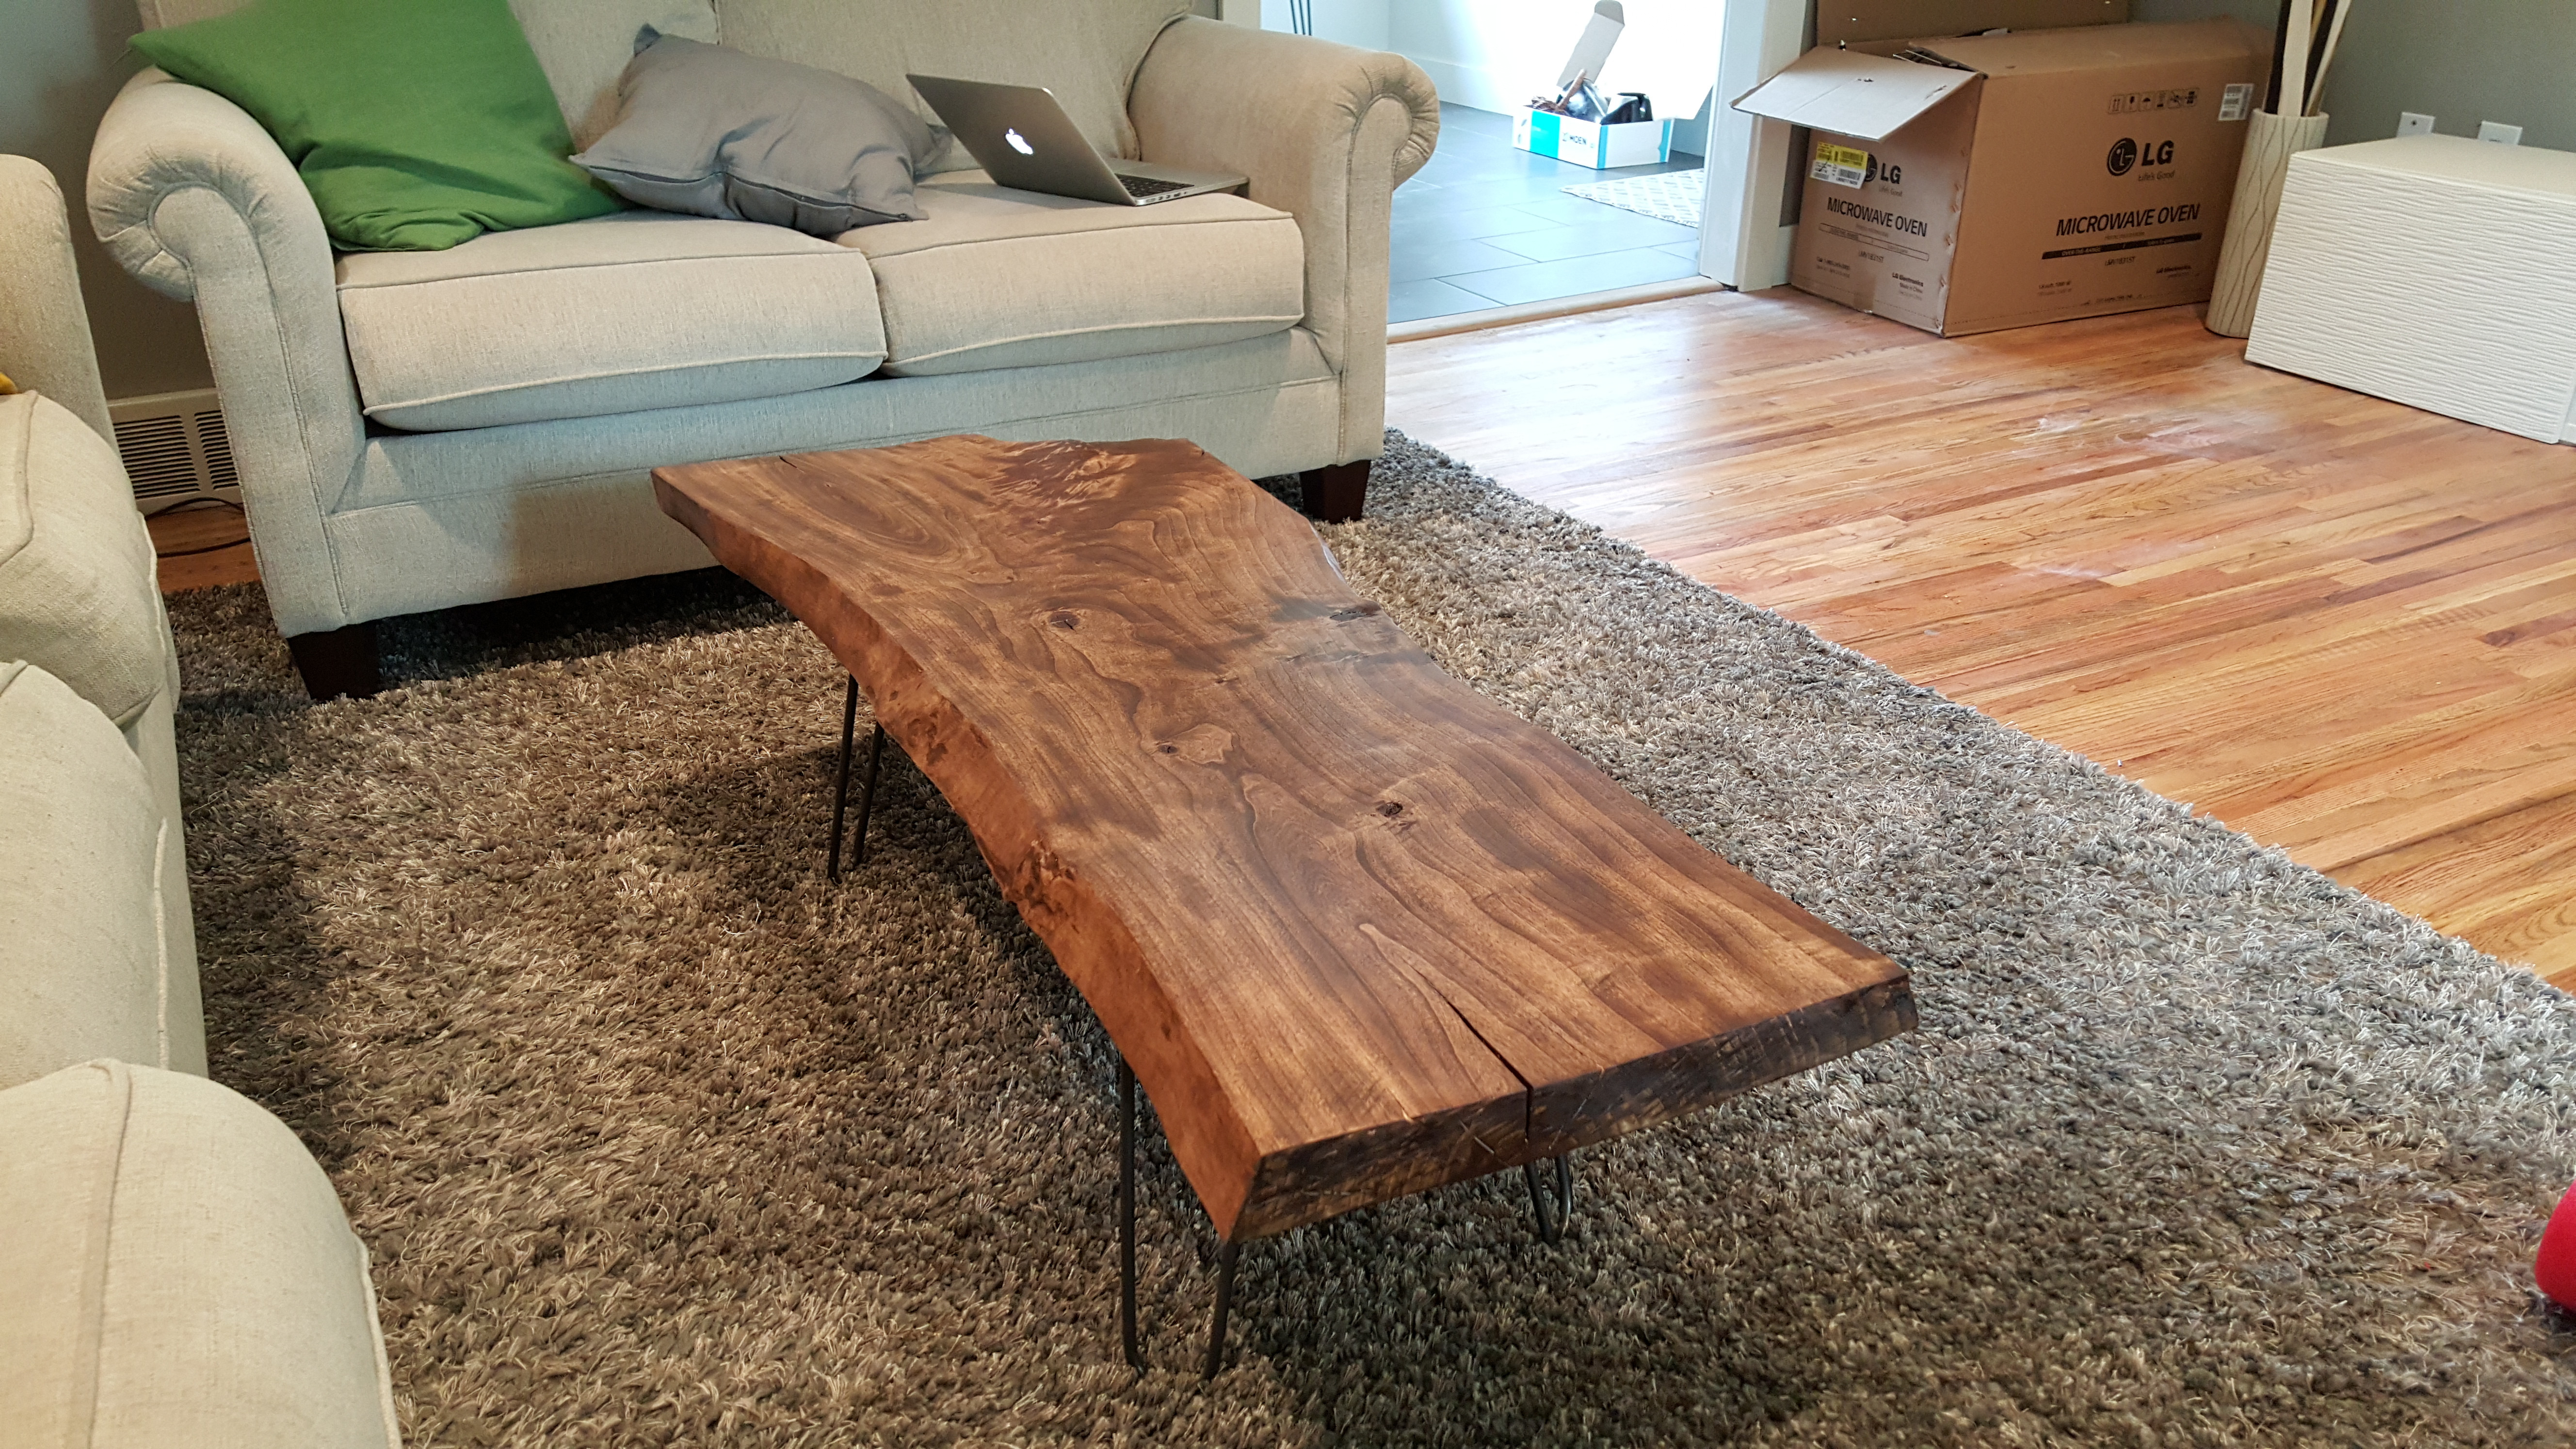 Diy Live Edge Wood Coffee Table Album On Imgur with regard to sizing 5312 X 2988